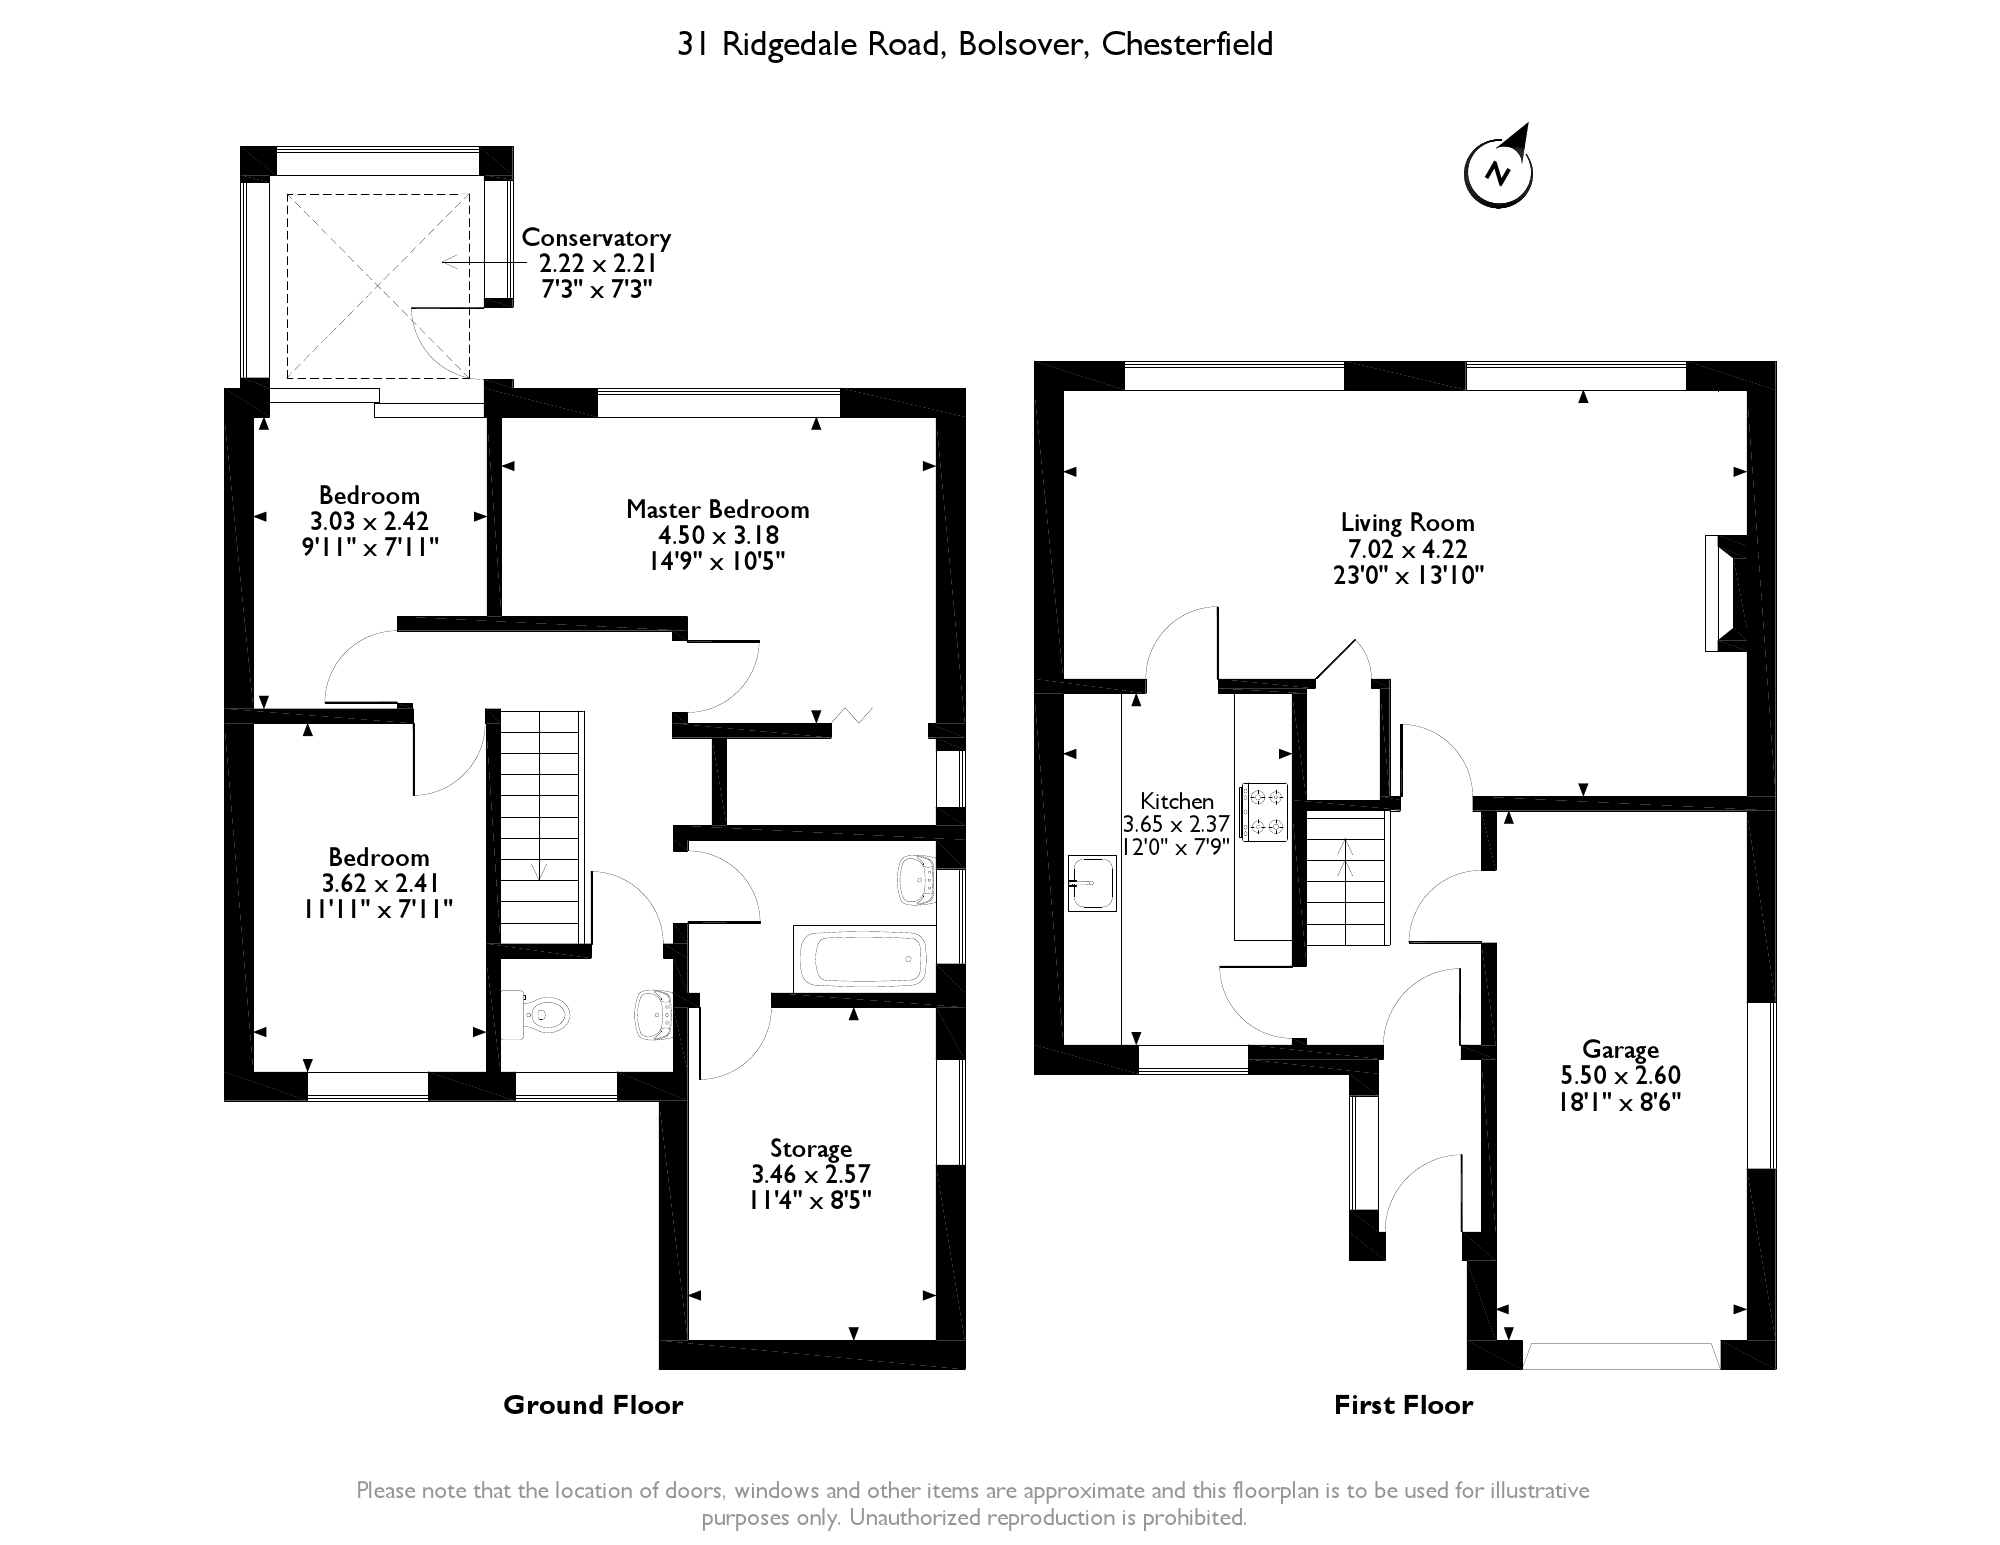 Ridgedale Road, Chesterfield,S44 floor plan